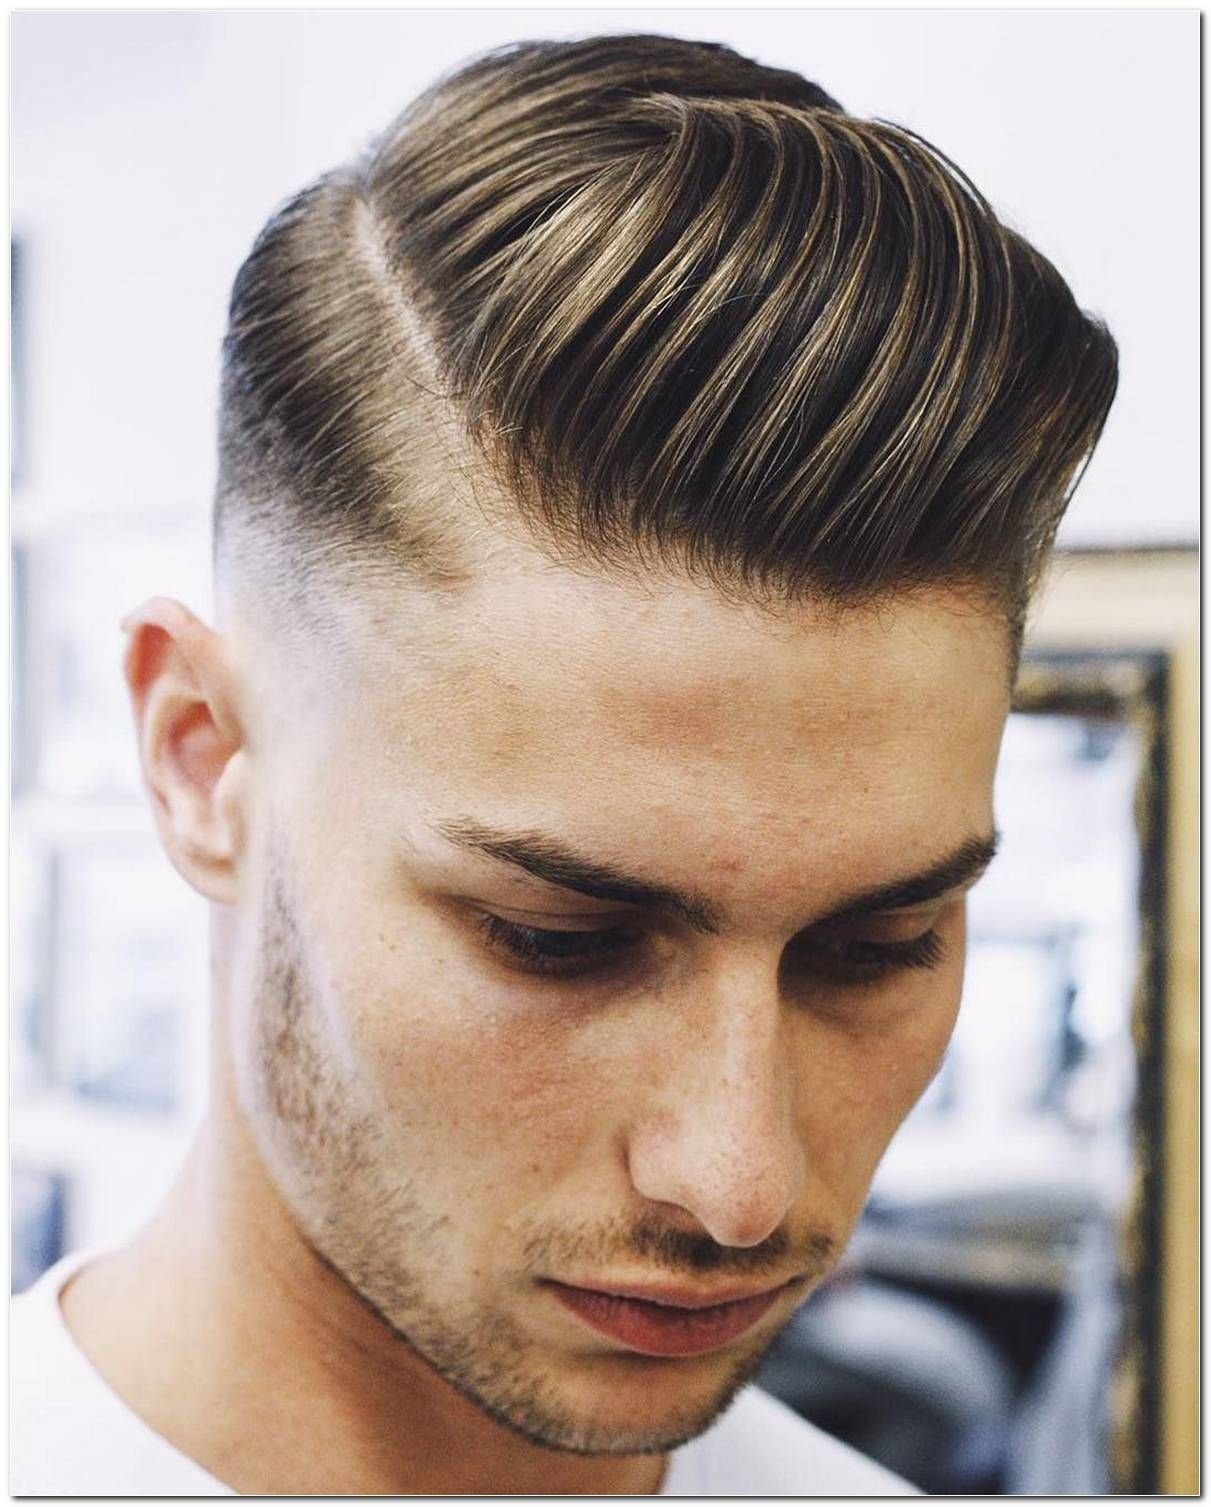 Barber Frisuren 2017 In 2020 Mens Hairstyles Short Haircuts For Men Cool Hairstyles For Men